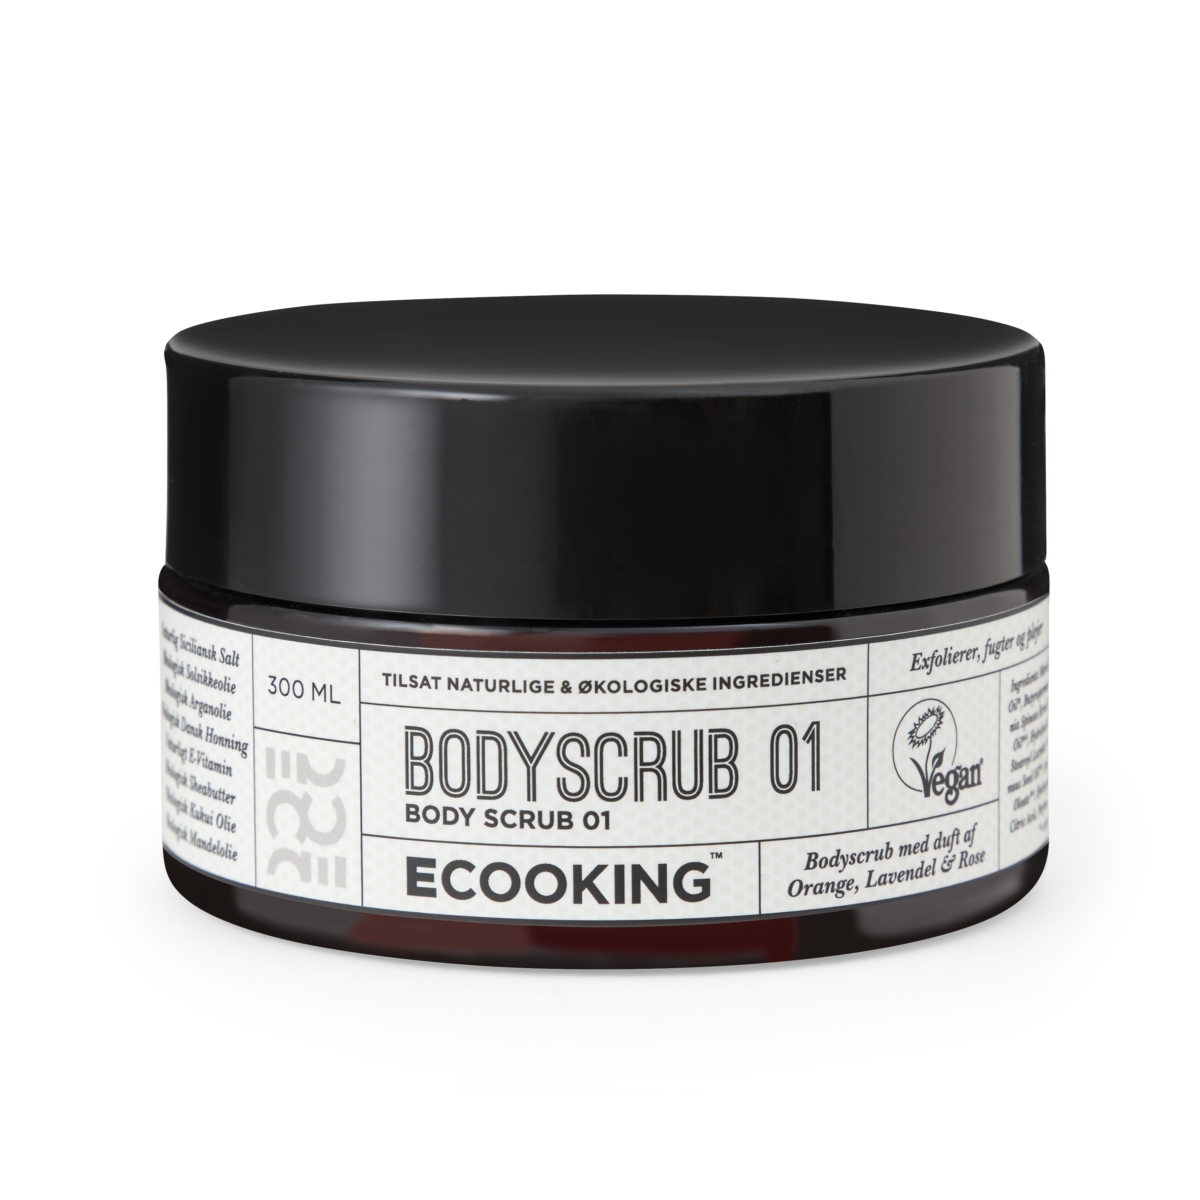 Ecooking BODYSCRUB 01 300 ML